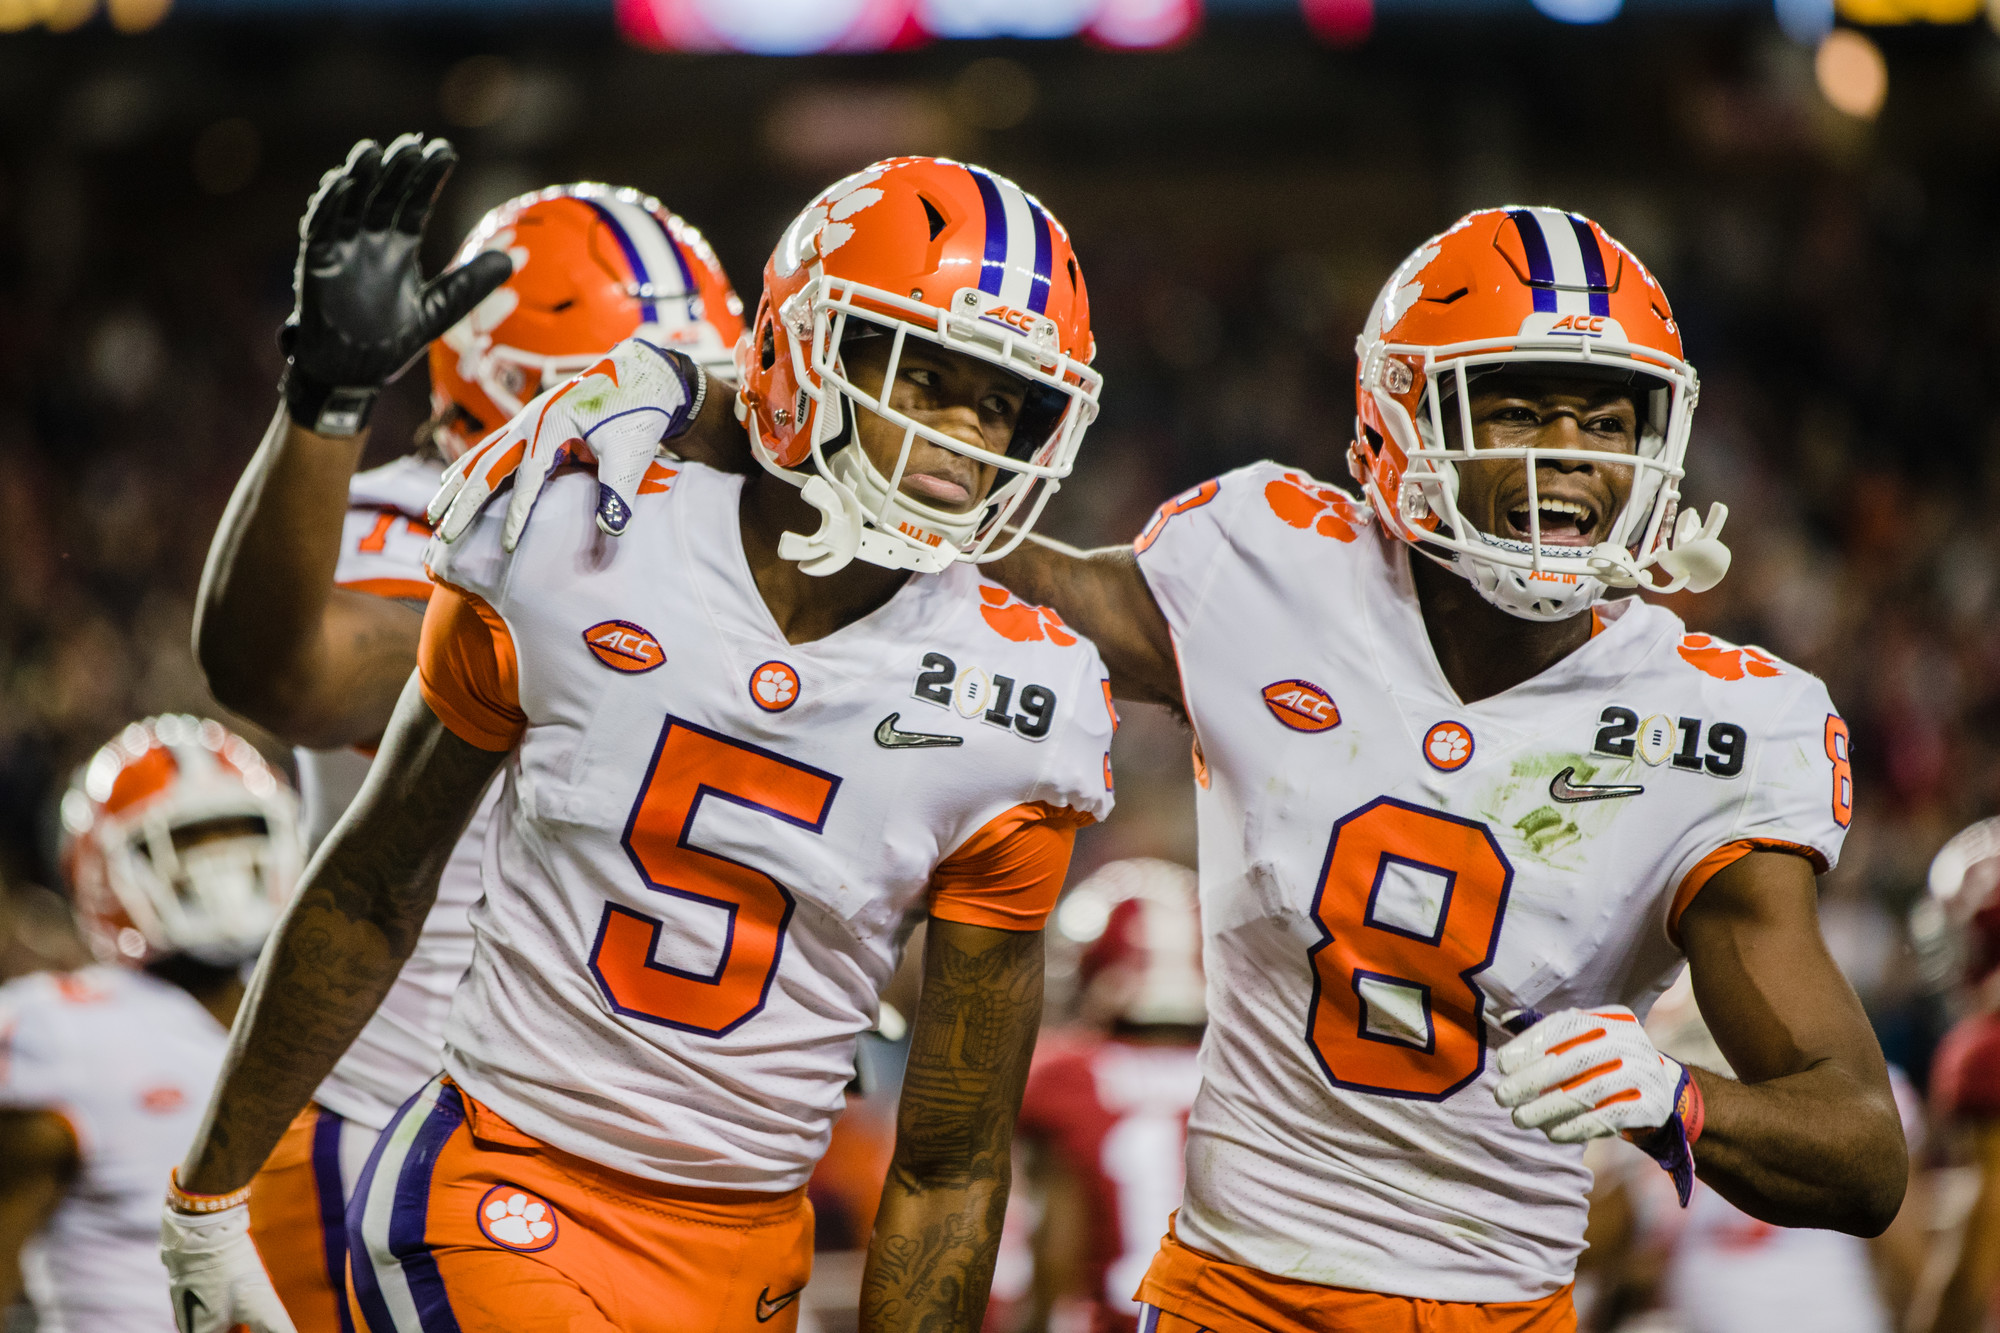 Clemson wide receiver Tee Higgins celebrates after a play with cornerback A.J. Terrell in the second half of the CFP National Championship game at Levi's Stadium in Santa Clara, California, on Monday, Jan. 7. Clemson  beat Alabama 44-16.